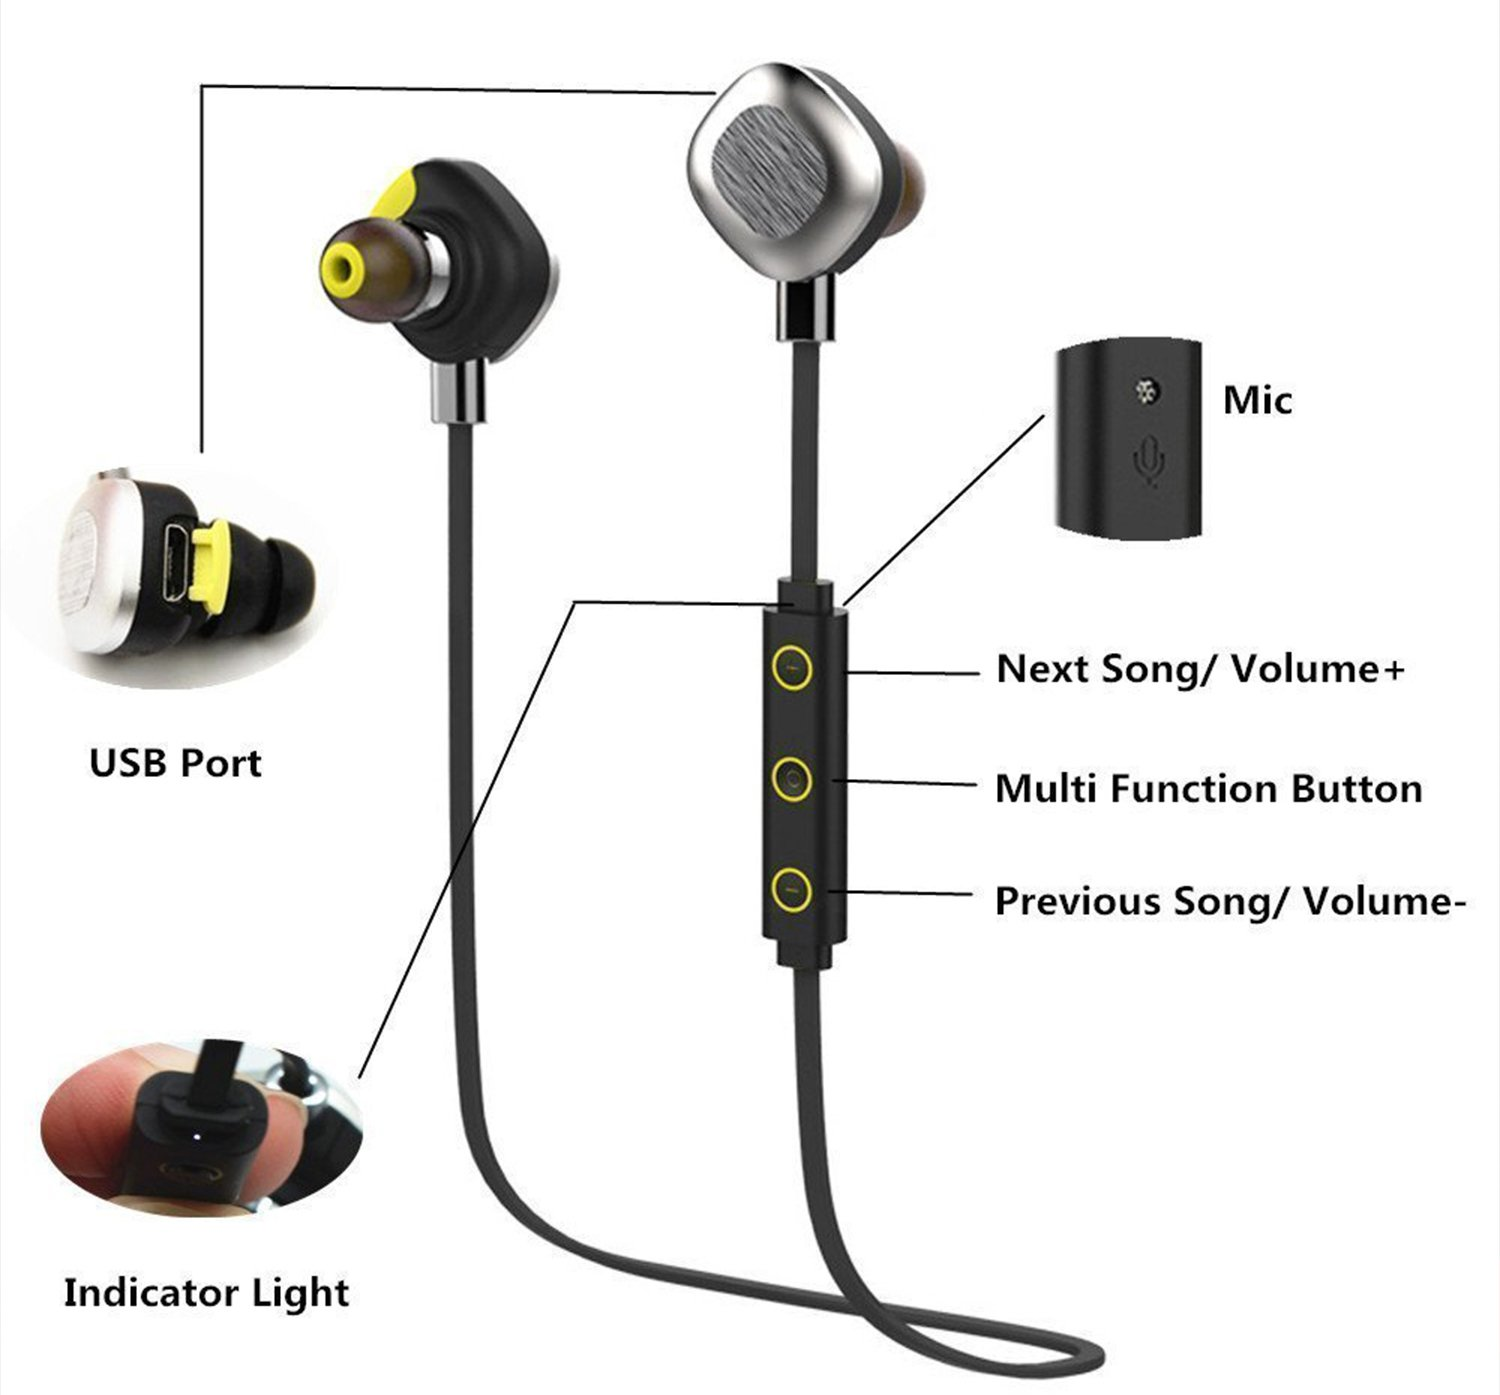 Boat Rockerz 250 In Ear Bluetooth Headphones With Mic Headset Circuit Diagram Electronics